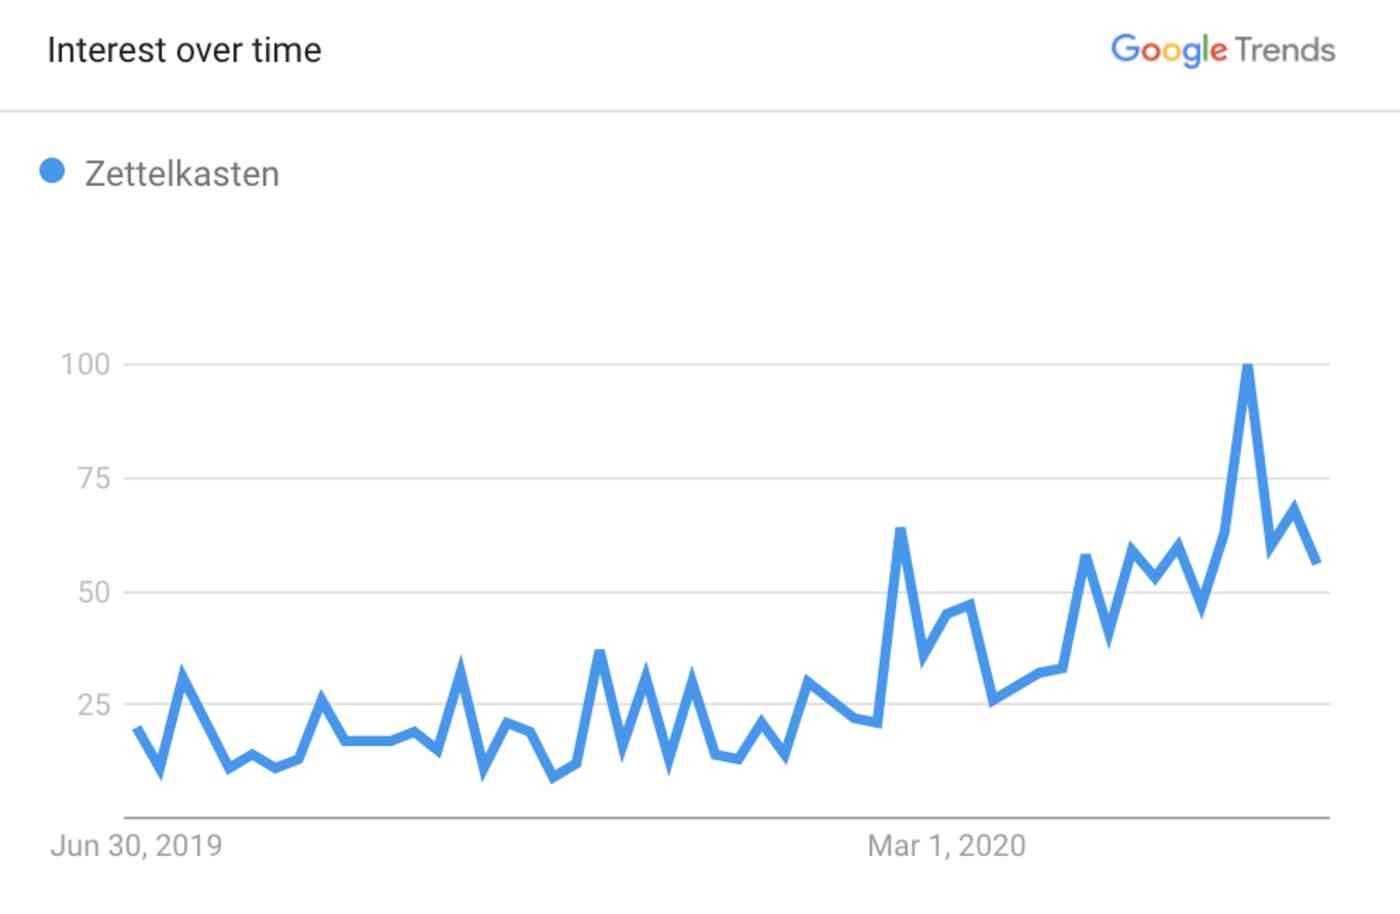 Showing Zettelkasten searches on Google Trends over the past year